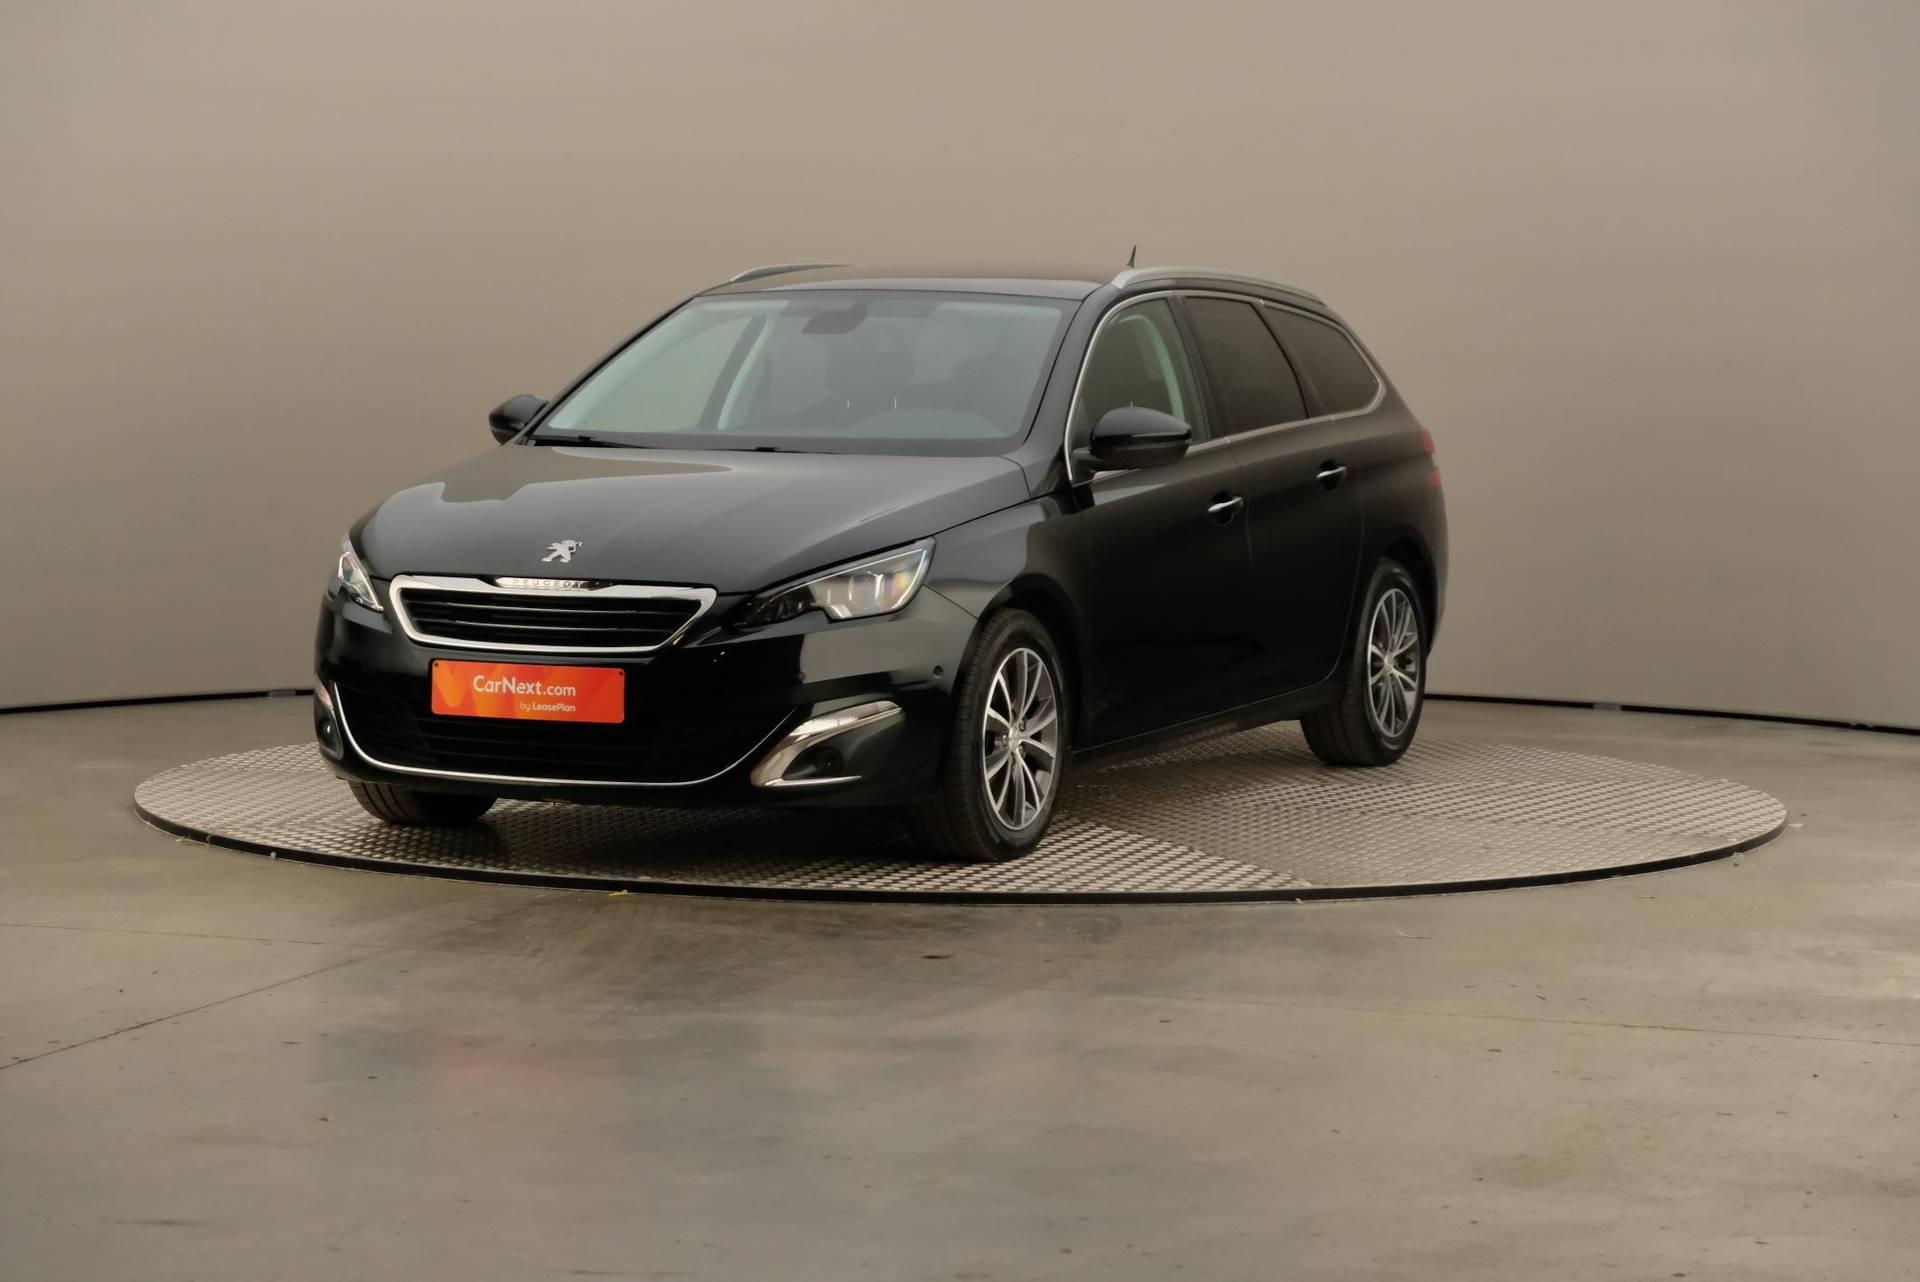 Peugeot 308 SW BlueHDi 150 Stop & Start, Active, 360-image34